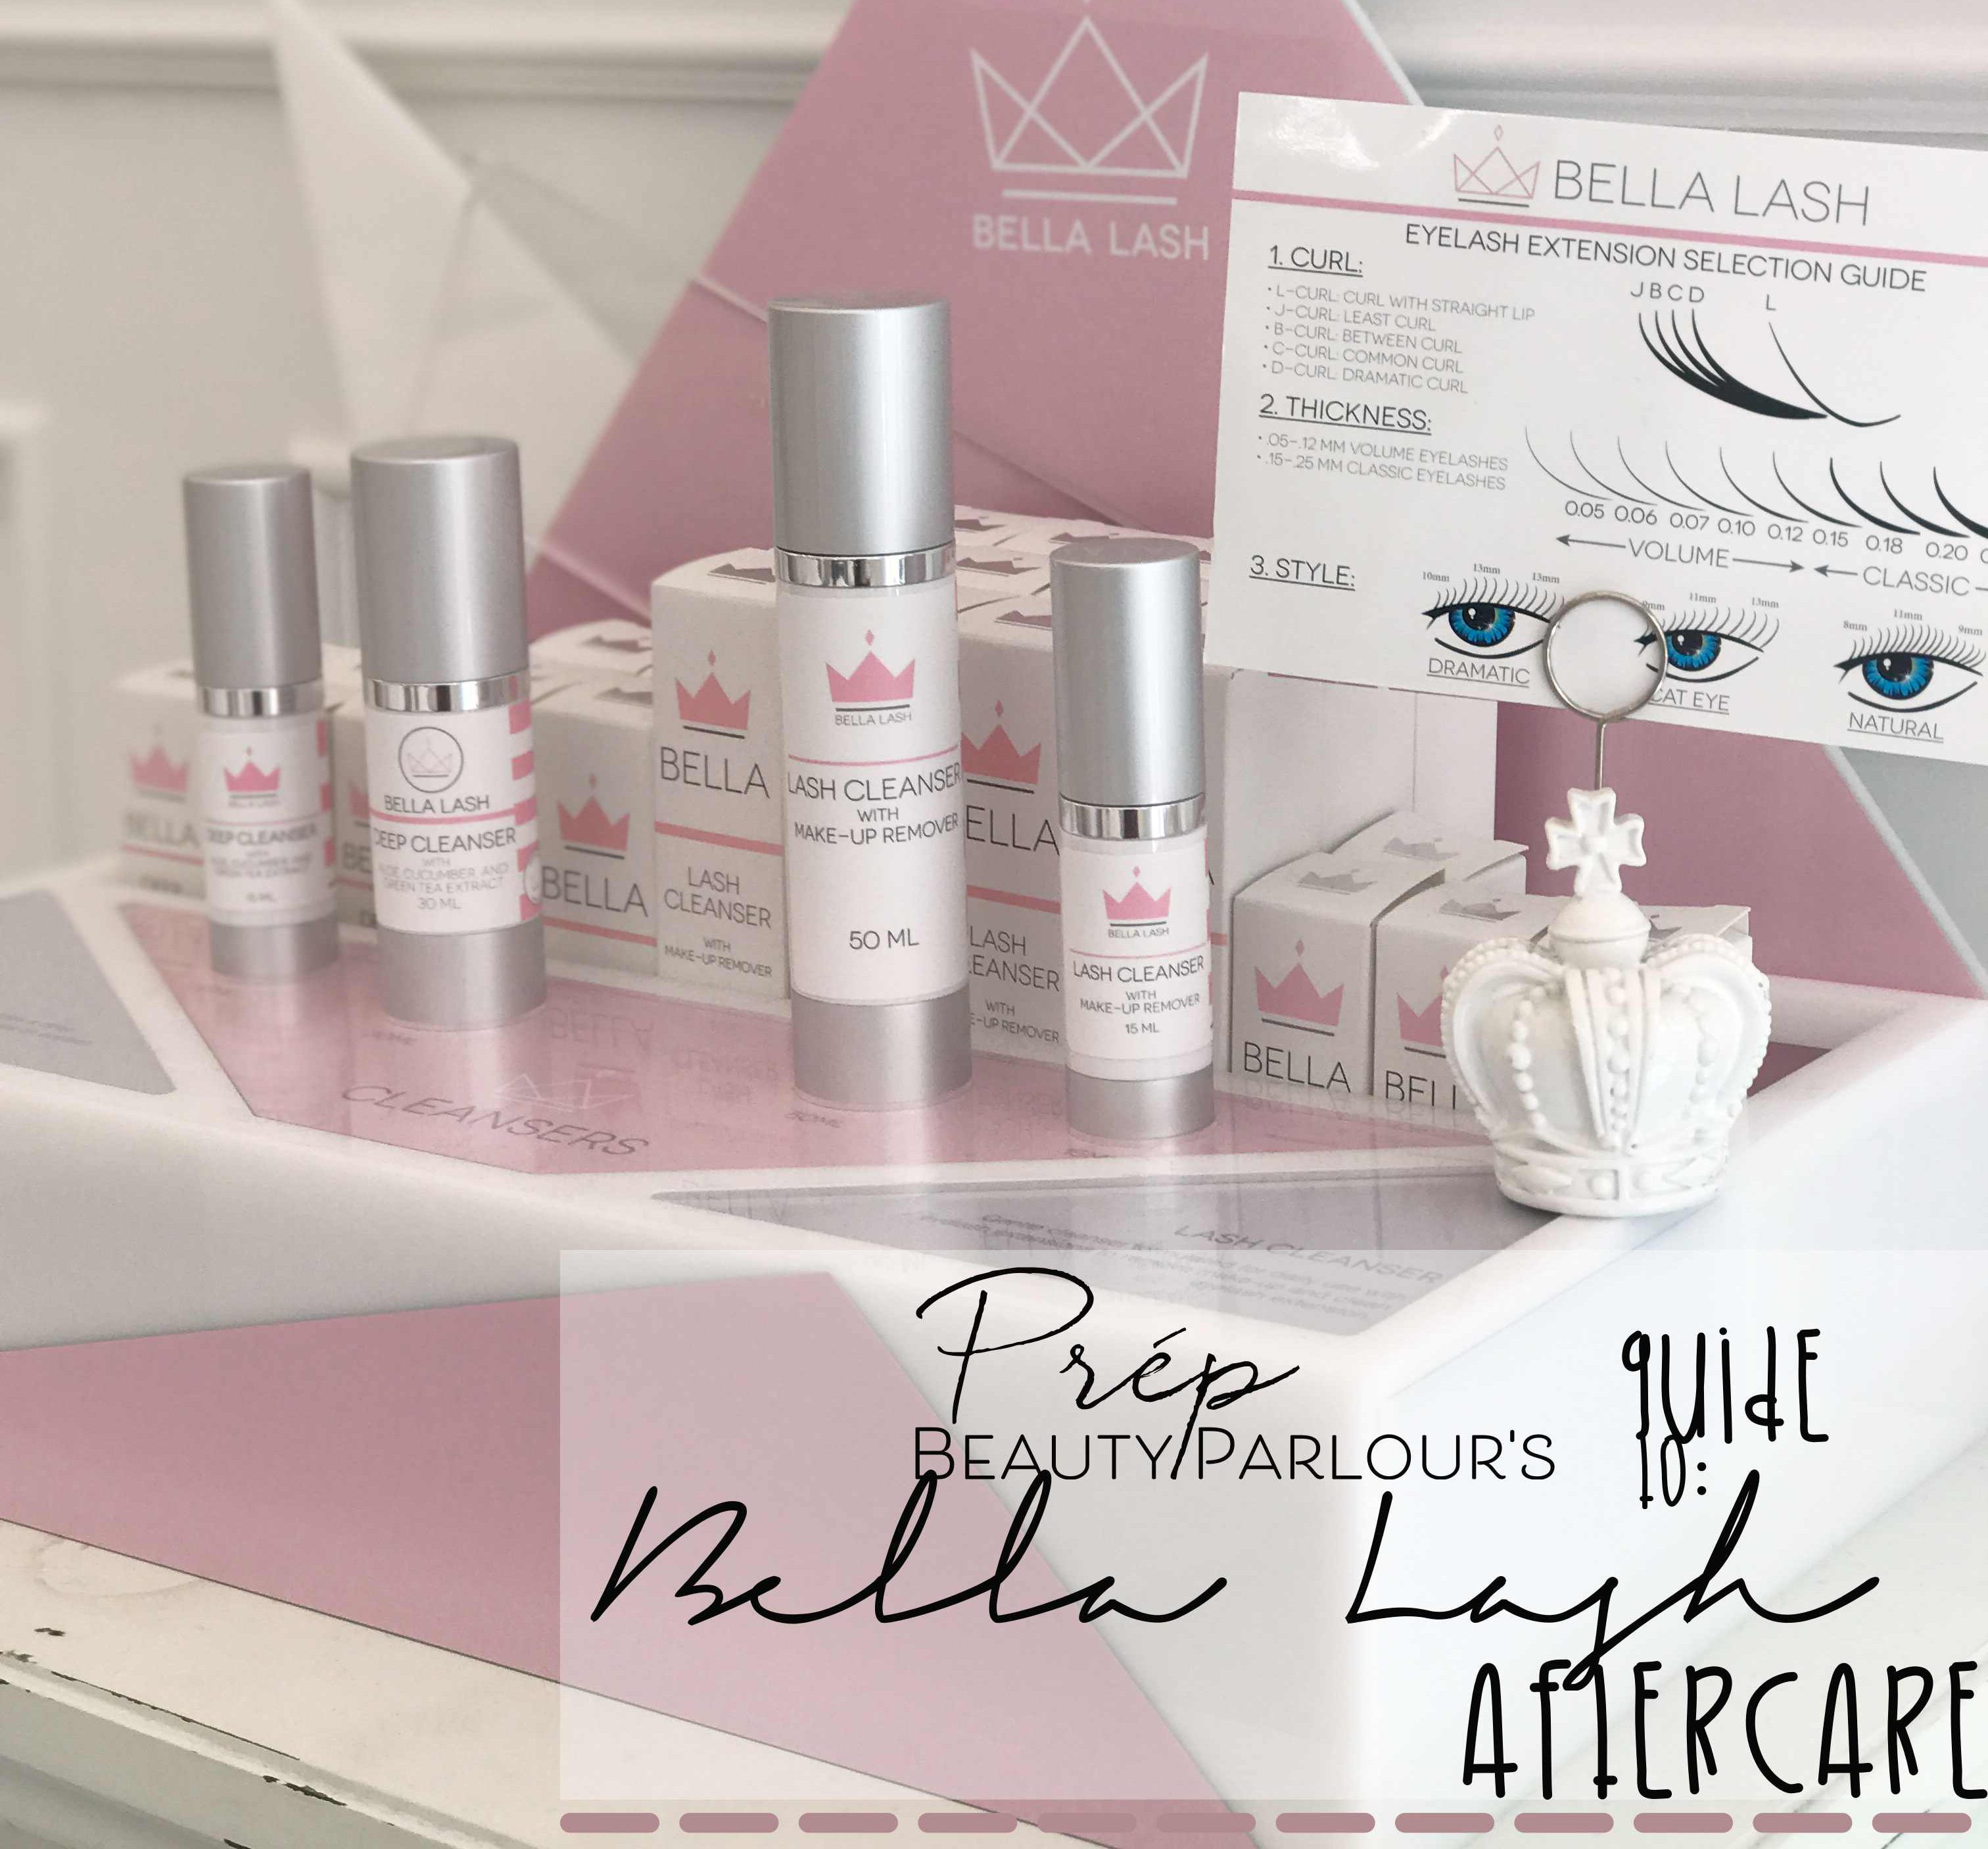 Prép Beauty Parlour Bella Lash Extensions Aftercare